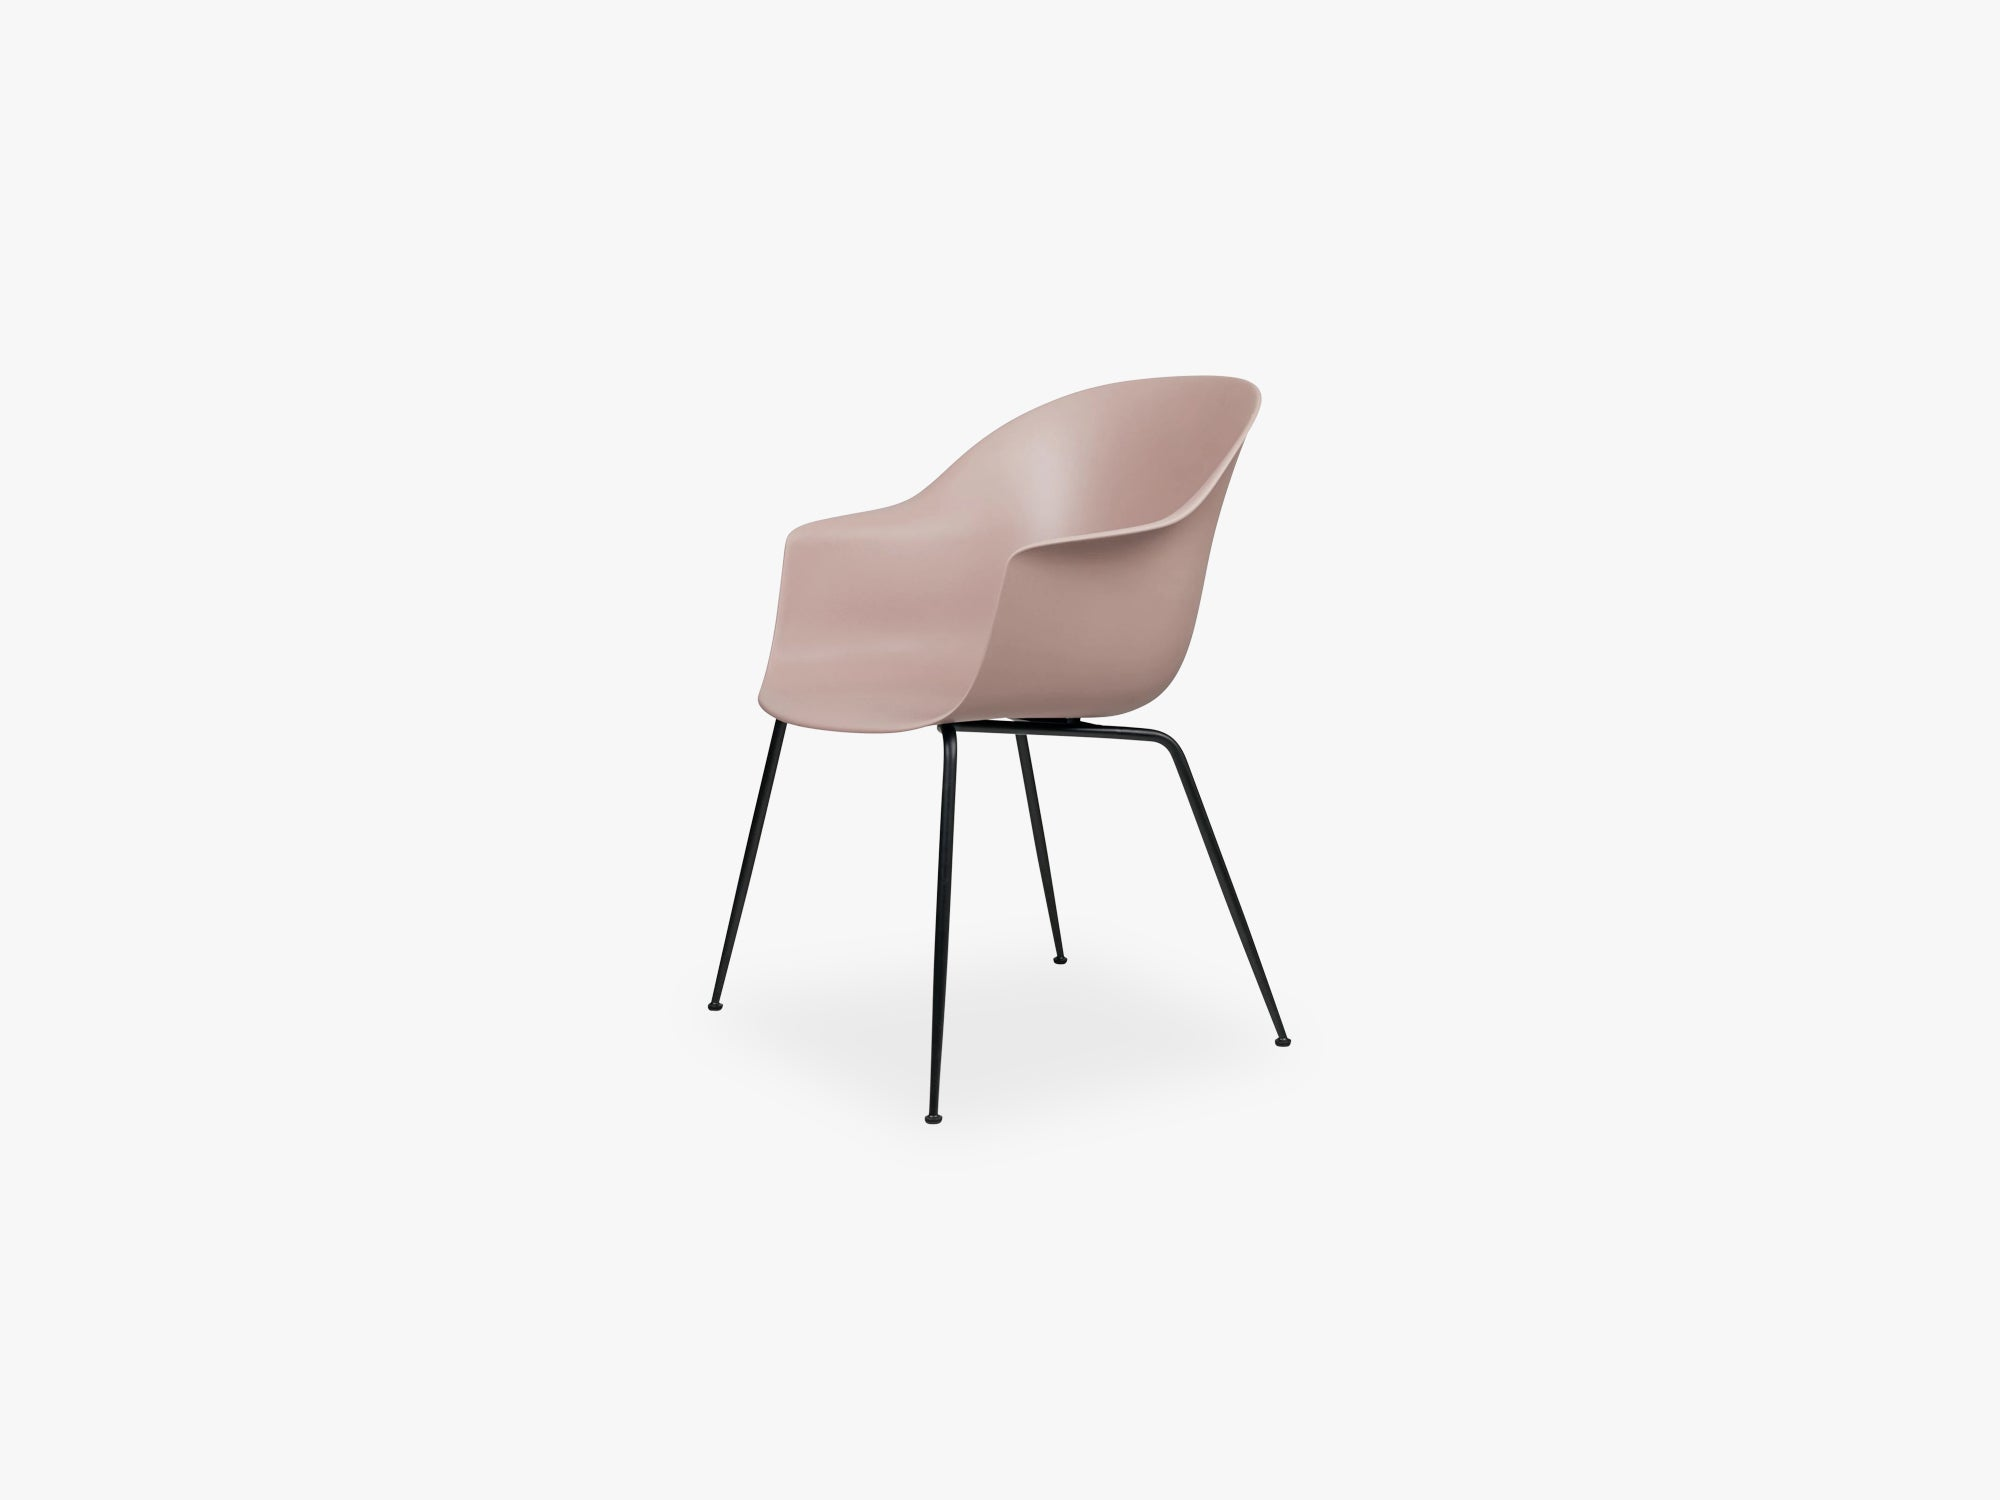 Bat Dining Chair - Skal m Conic base - Black Matt, Sweet Pink fra GUBI